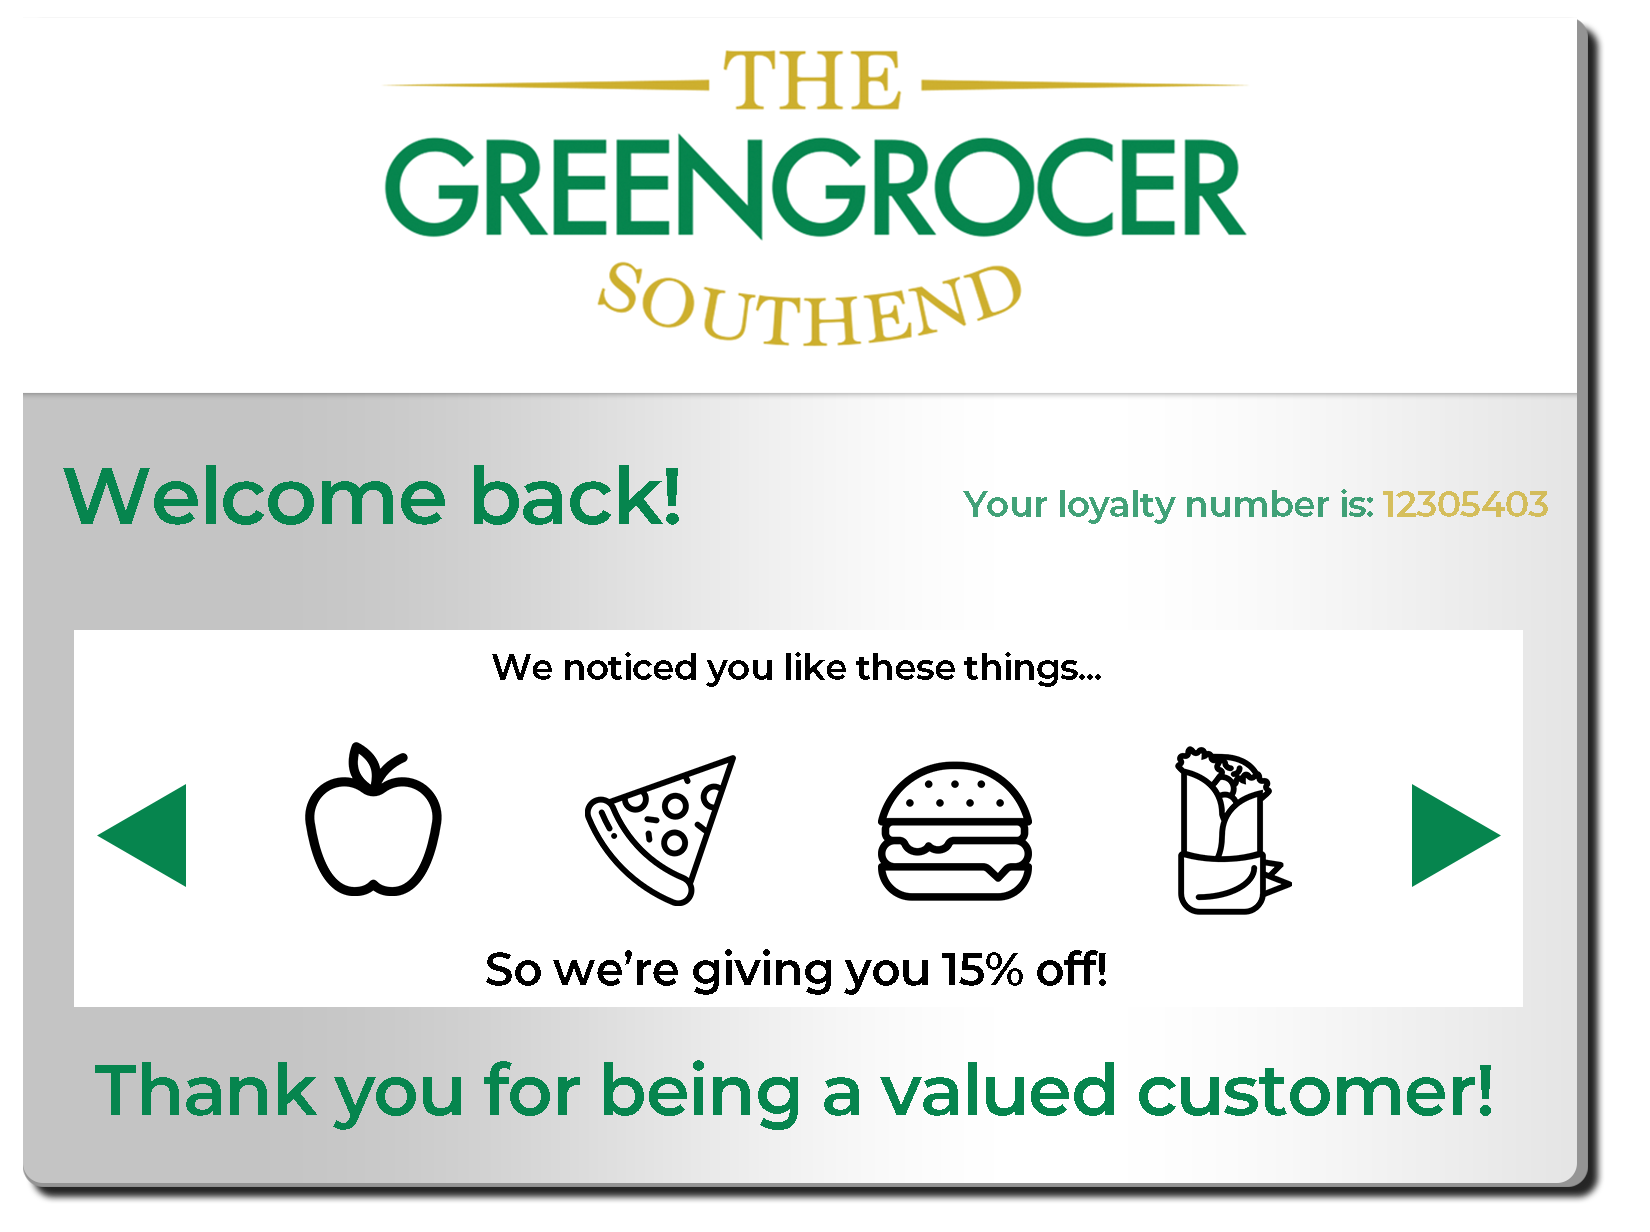 You can offer the members of your loyalty scheme personalised discounts